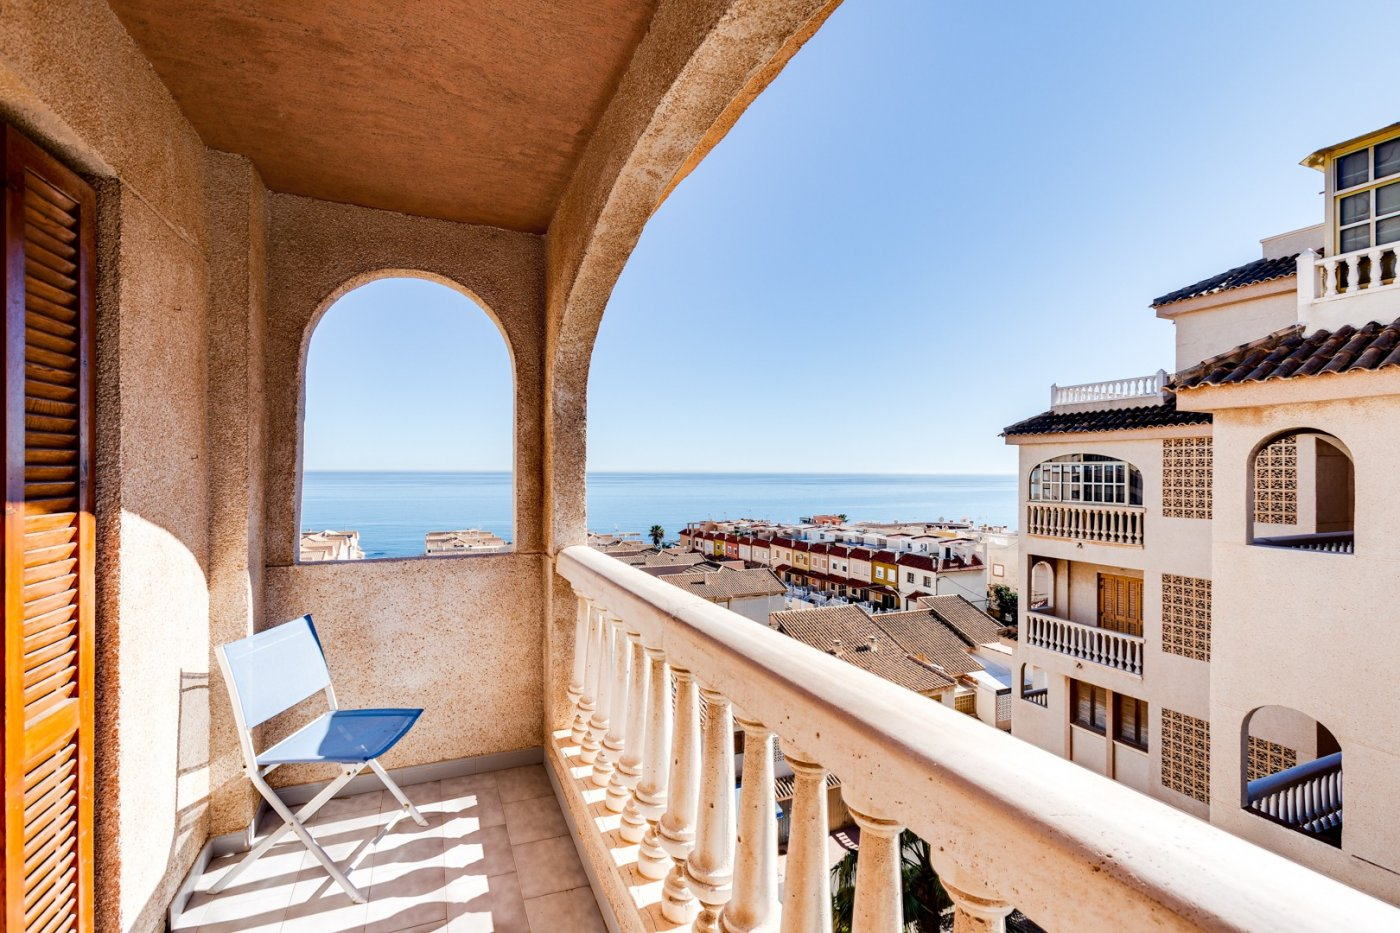 3 Bedrooms Apartment For Sale with Sea Views in Cabo Cervera Near the Beach